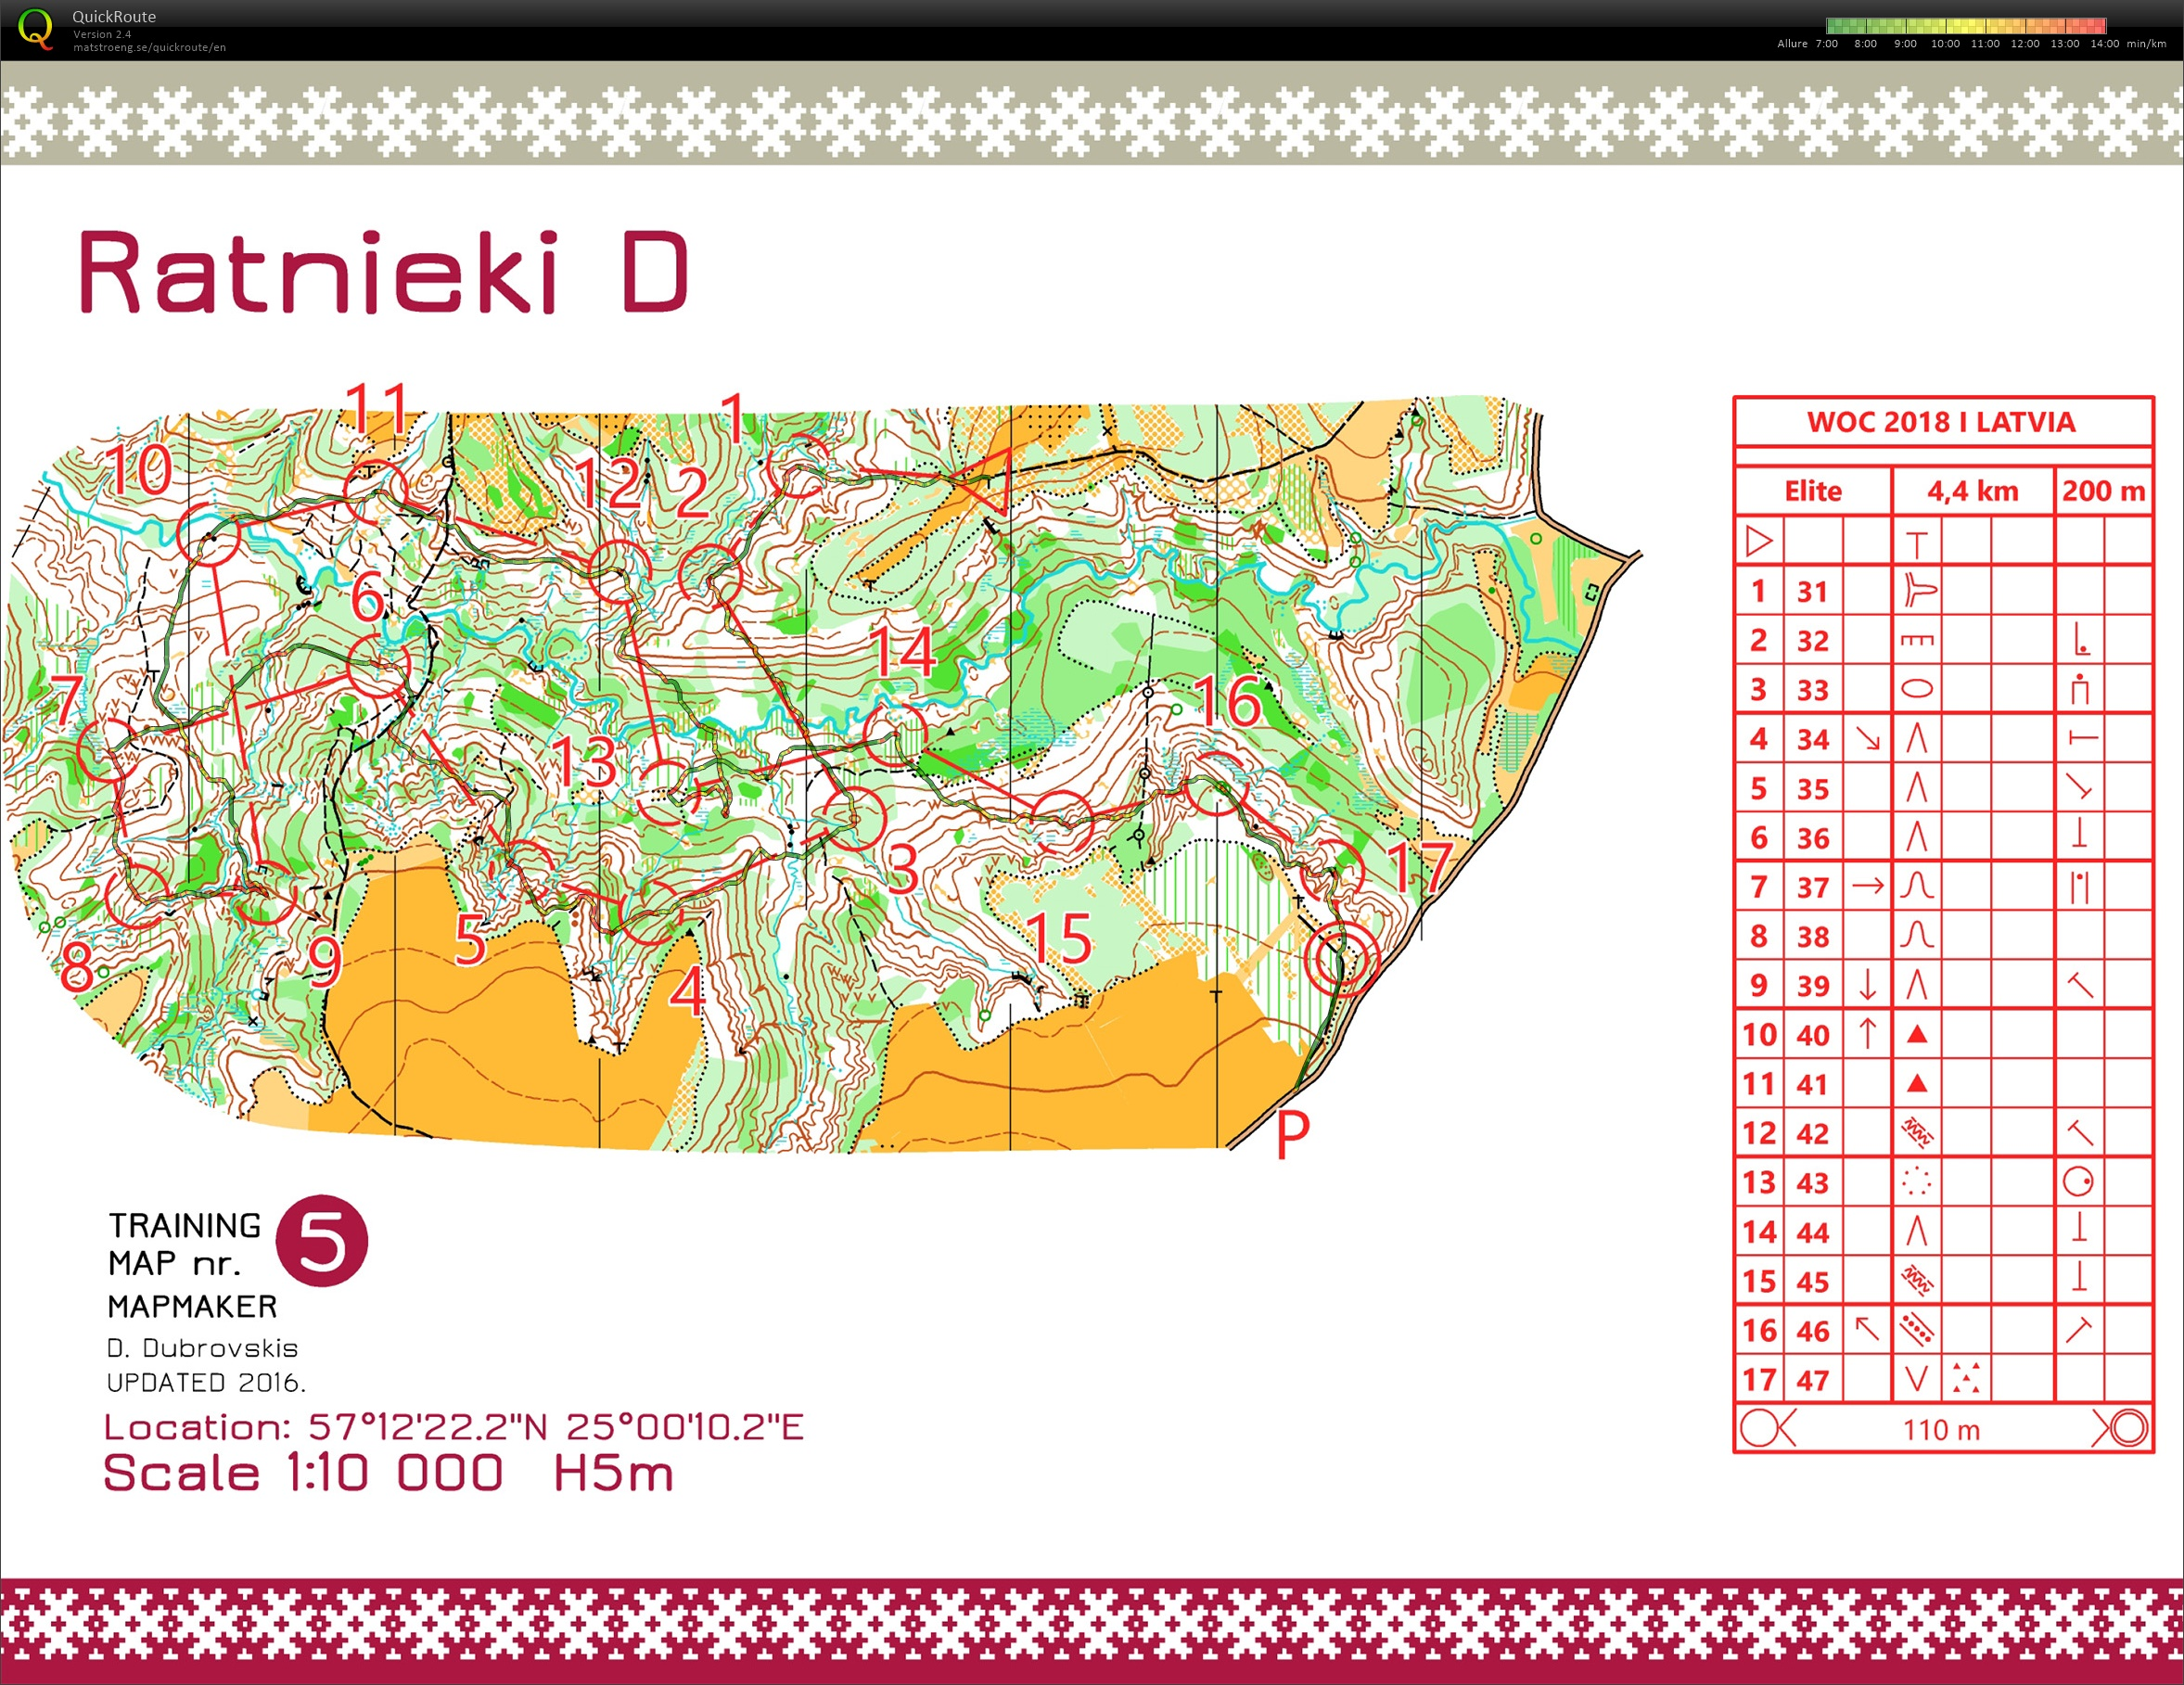 PrépaWOC 2018 Latvia // Slopes (SWE) (05/07/2018)